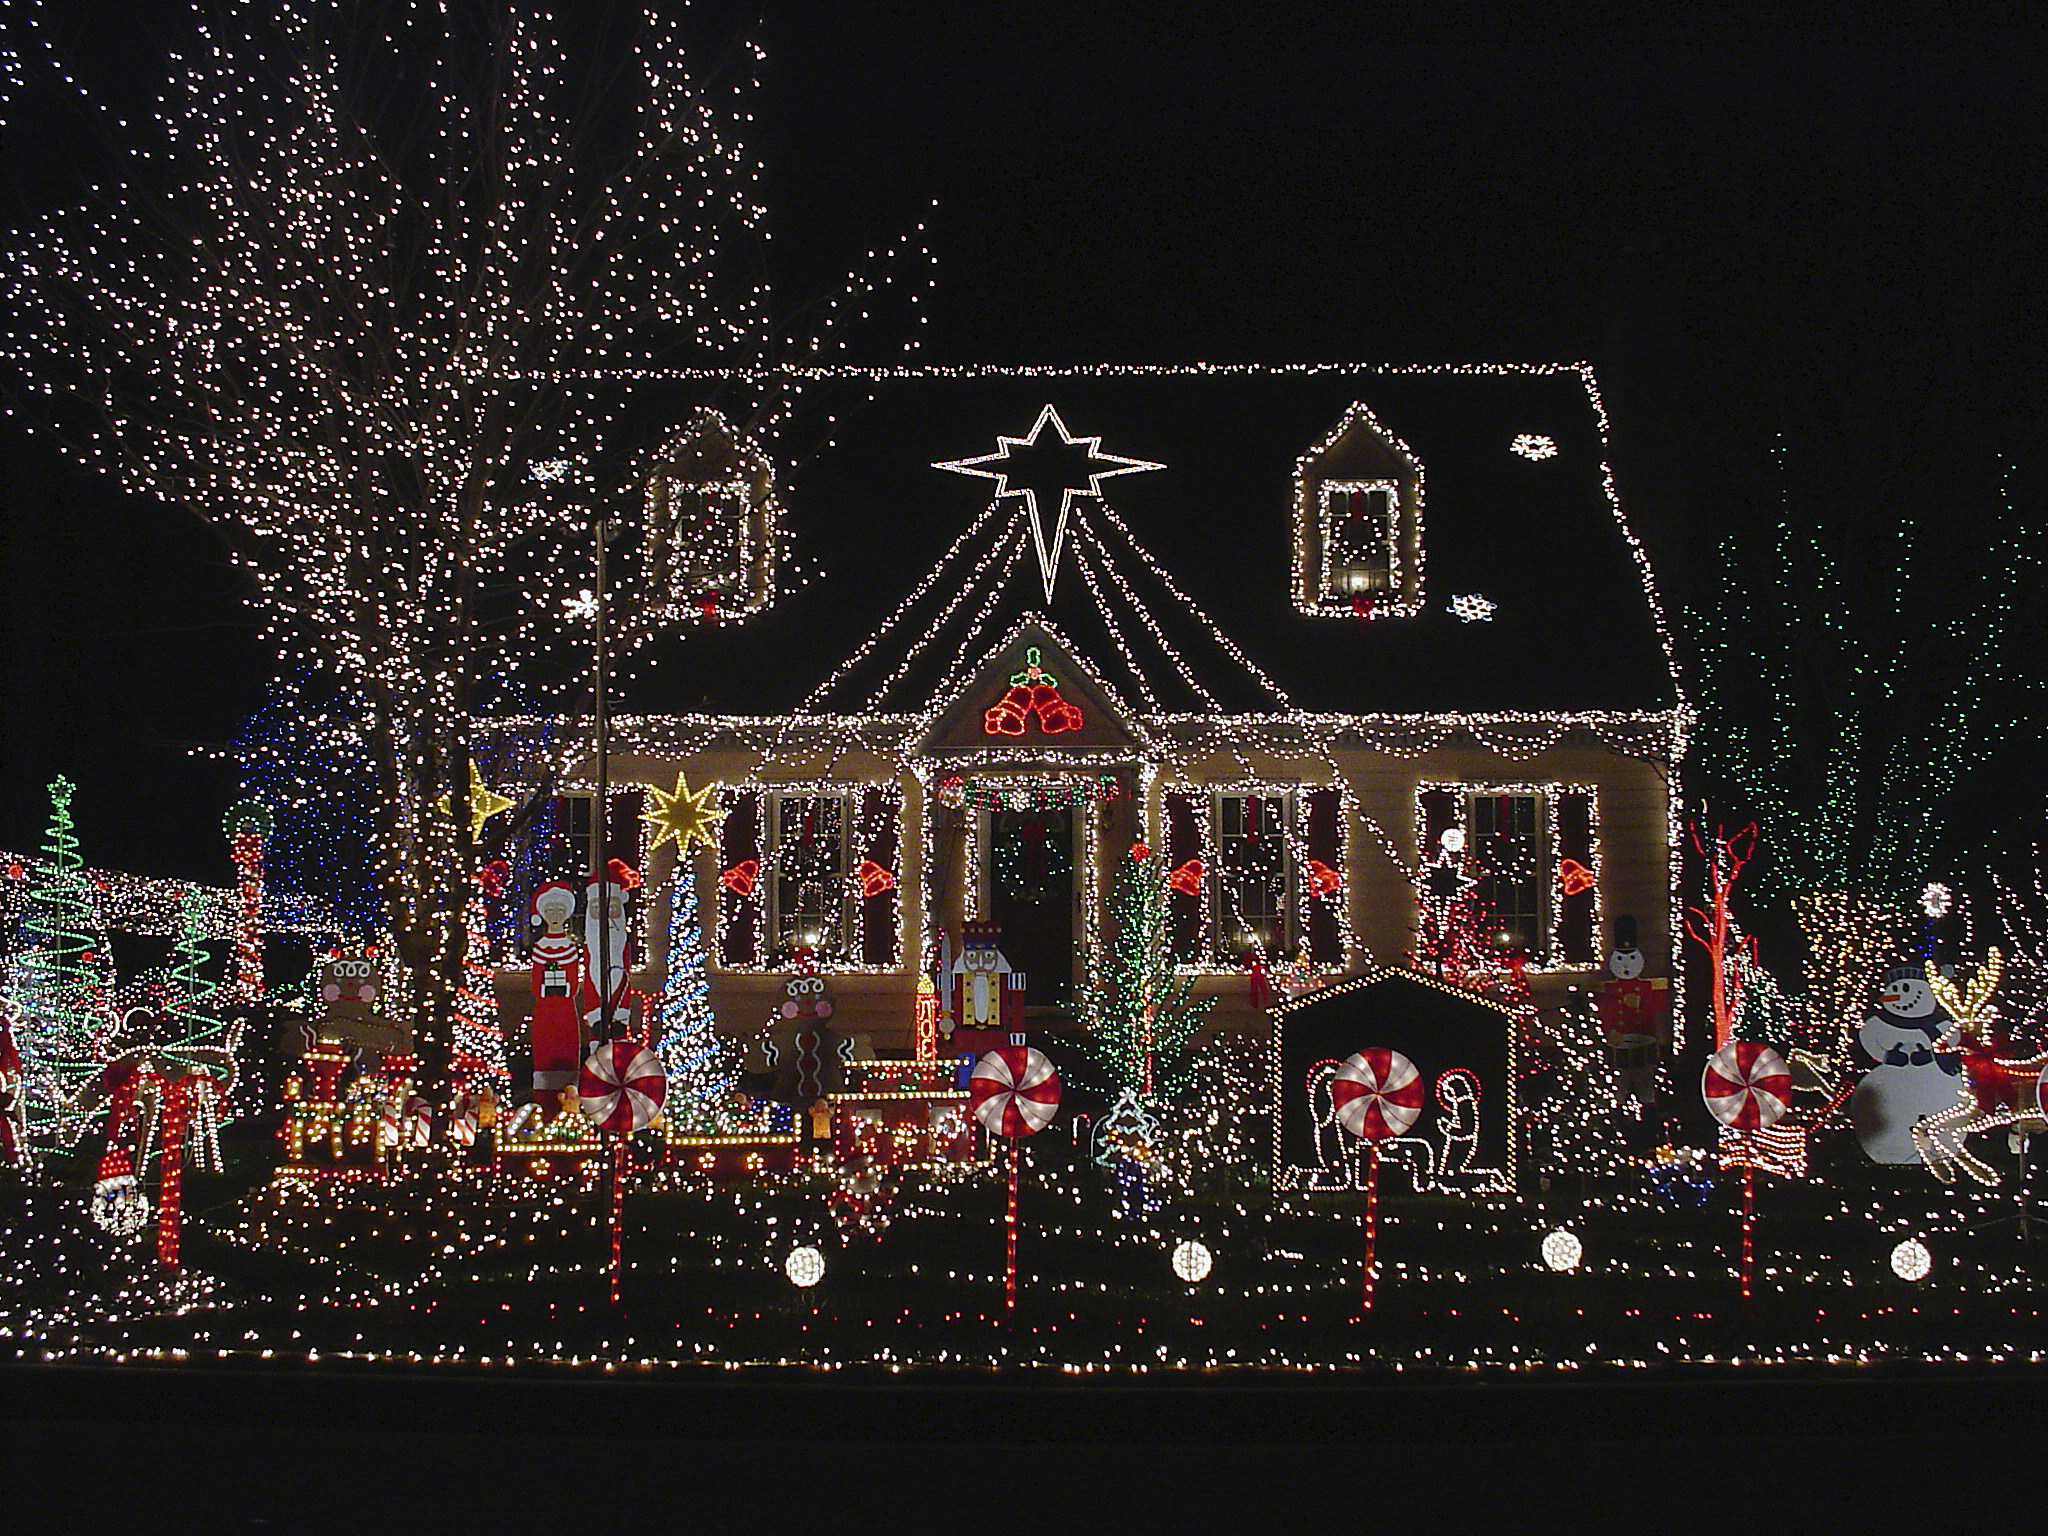 The Best Holiday Light Displays in the Quad Cities